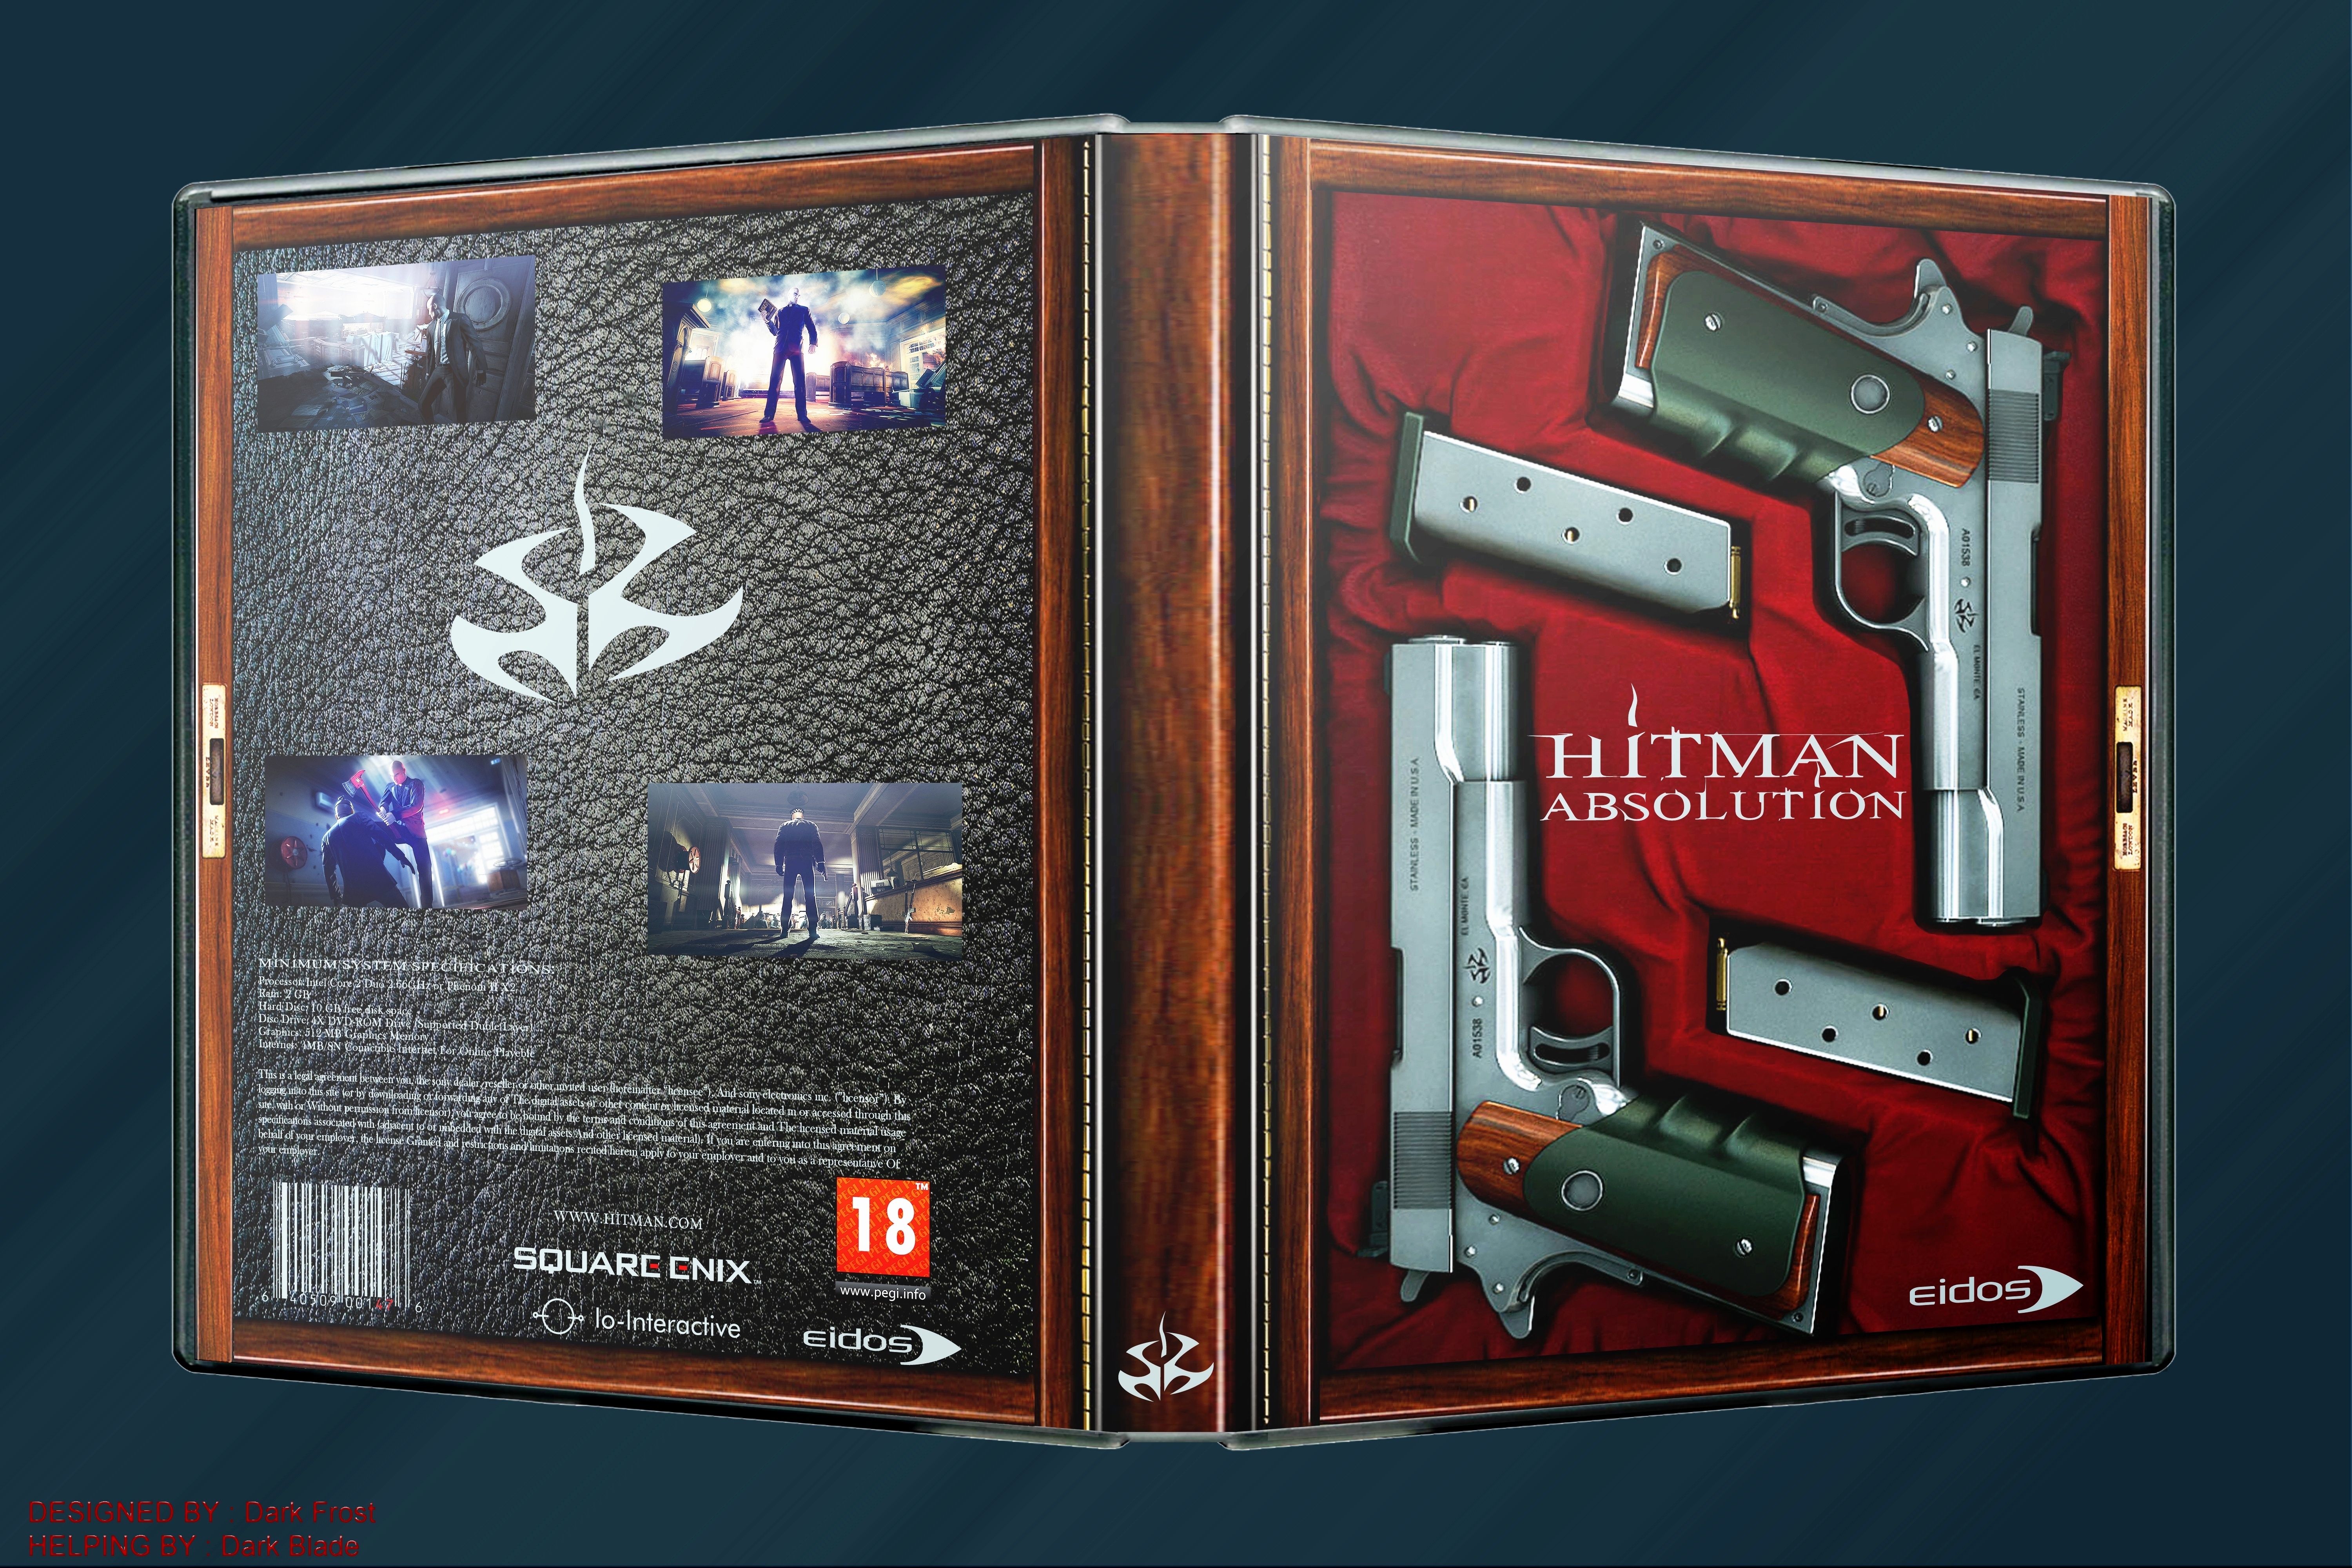 Hitman Absolution Fuse Box : Hitman absolution pc box art cover by dark frost